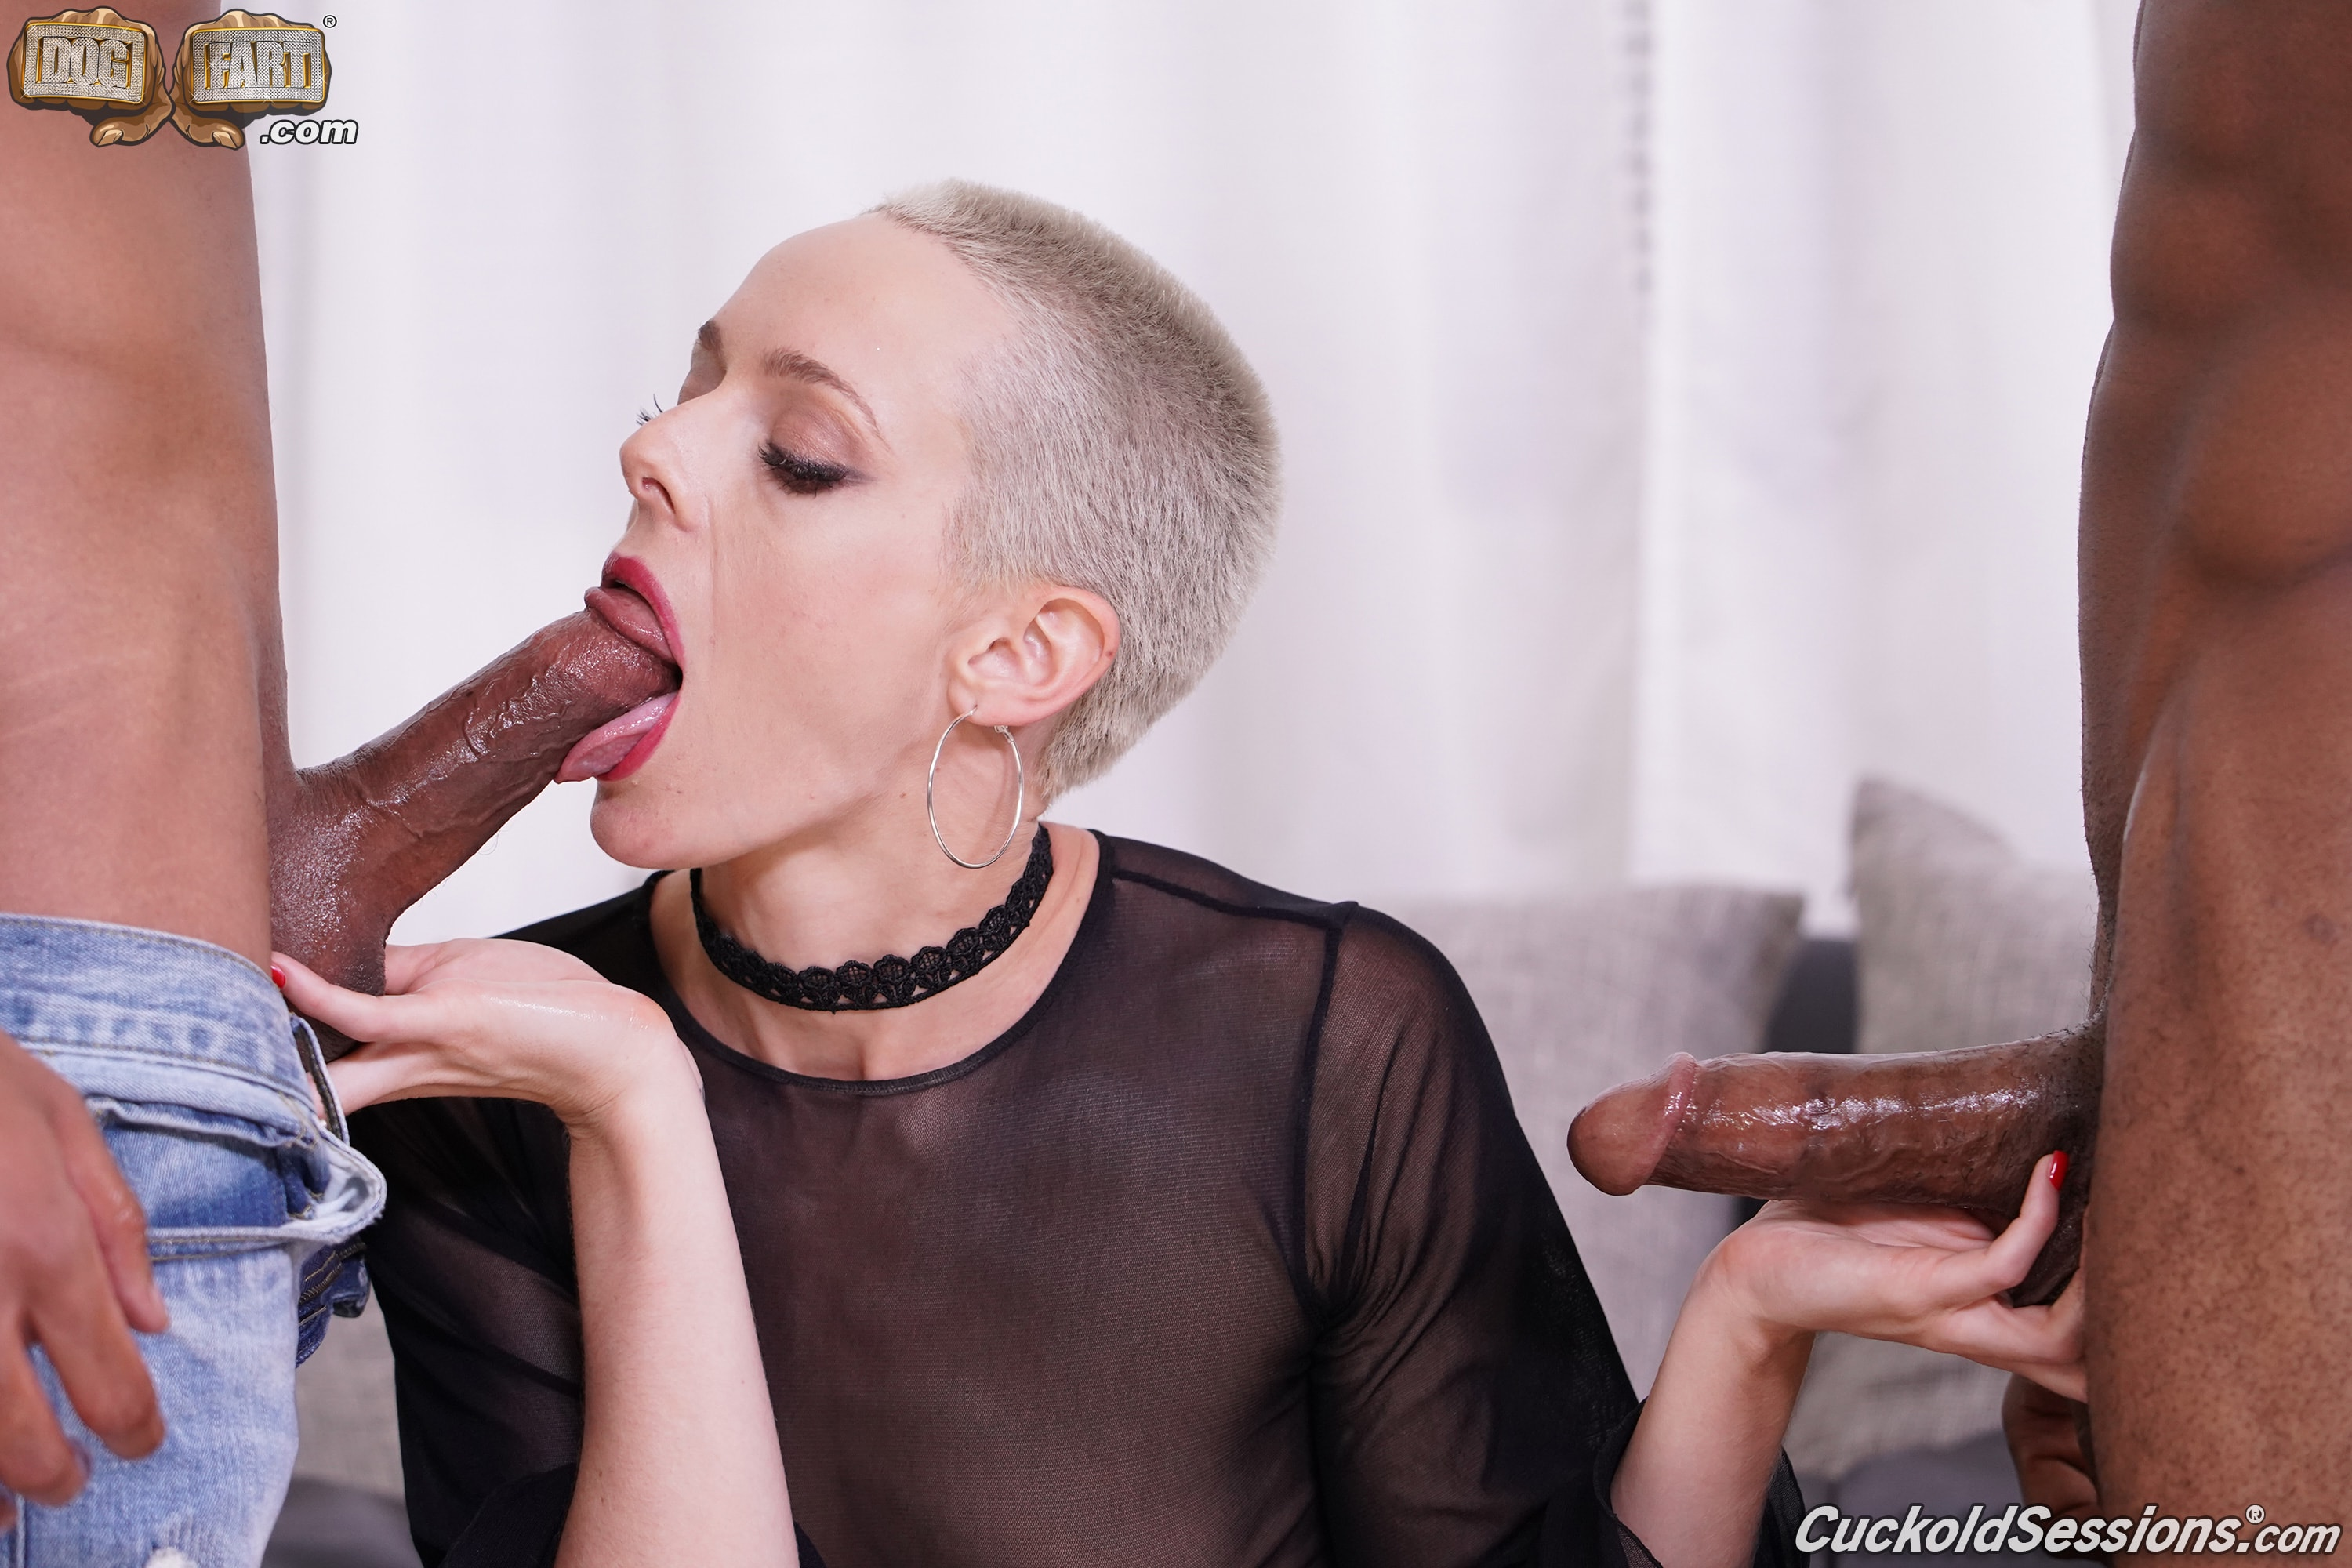 Dogfart '- Cuckold Sessions' starring Sidra Sage (Photo 16)